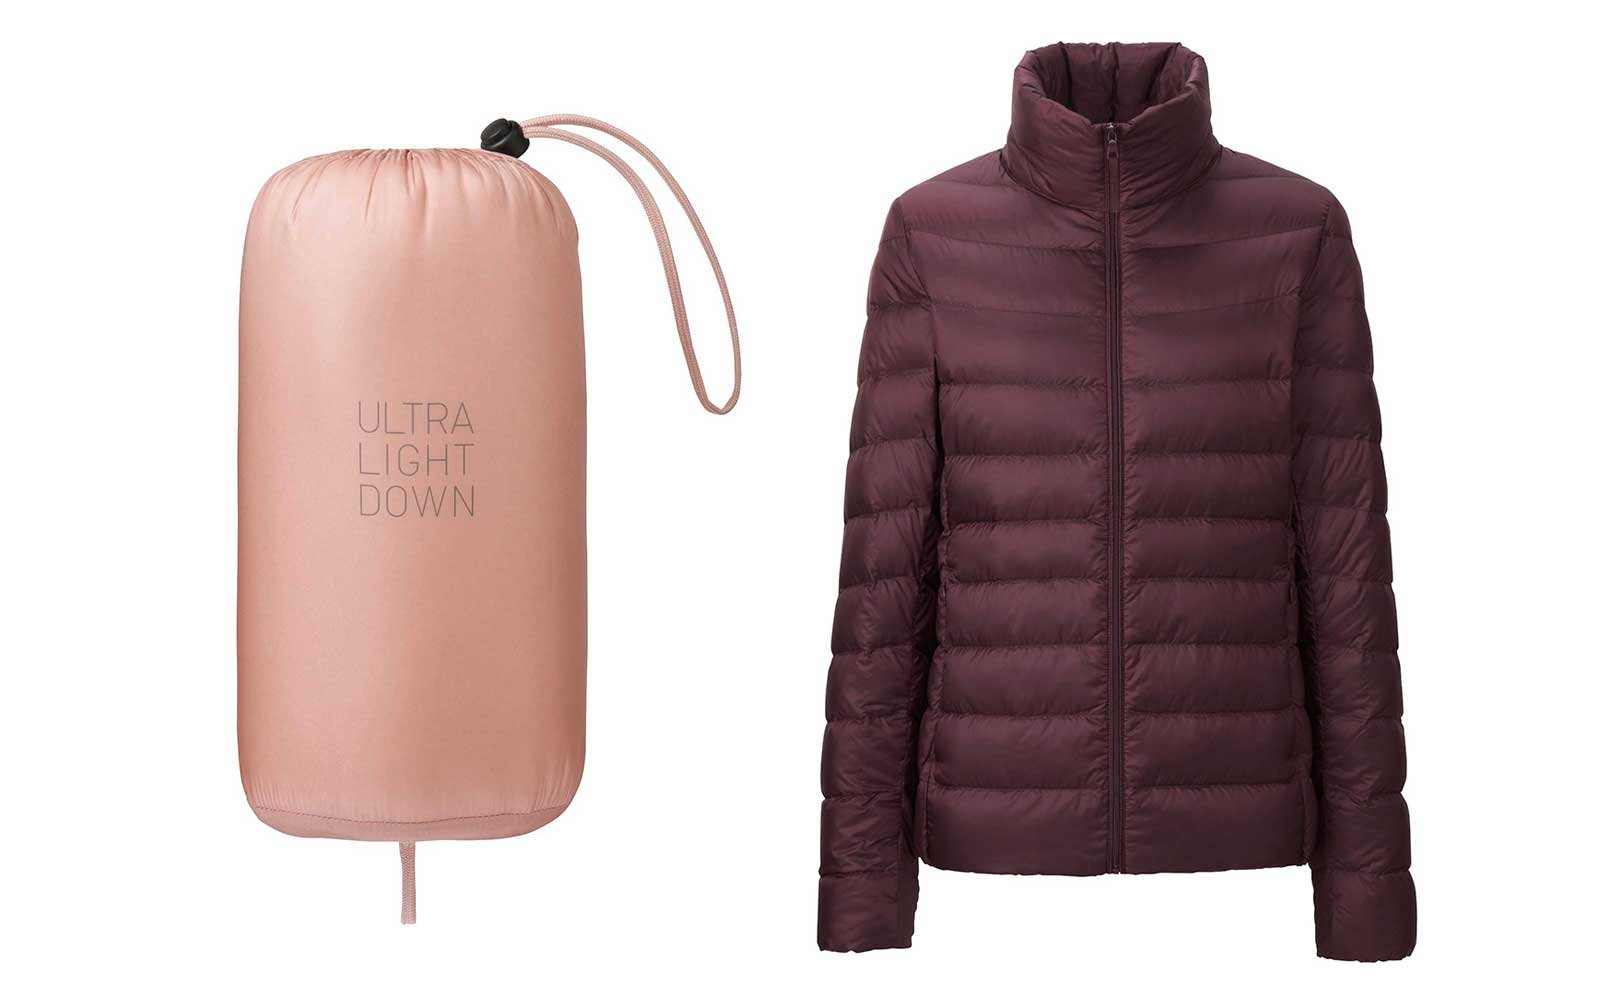 Uniqlo foldable jacket